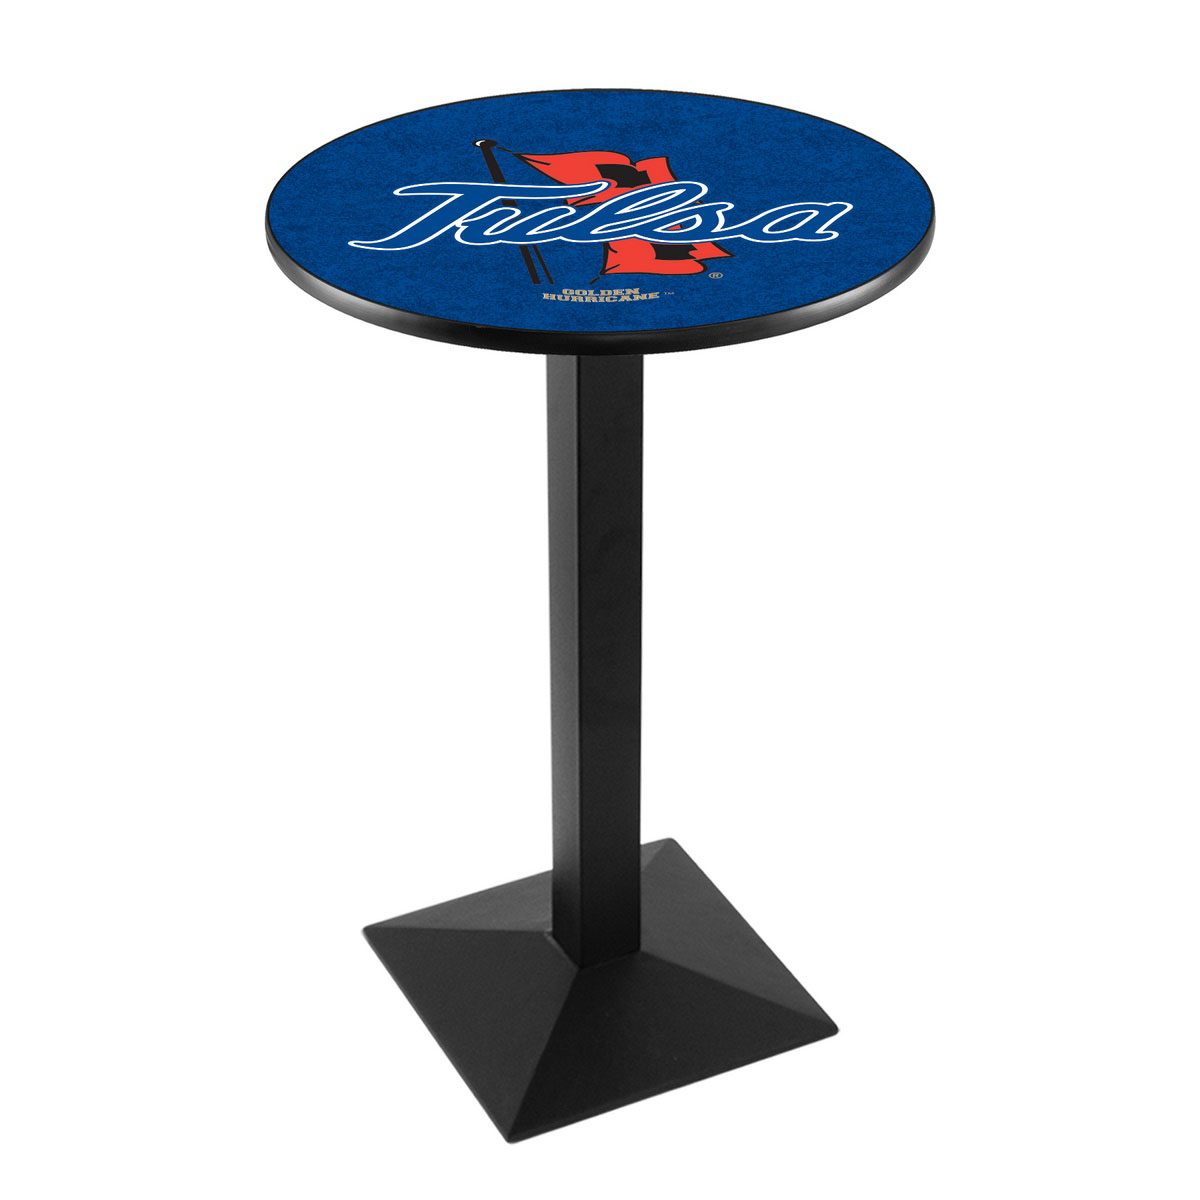 Affordable University Tulsa Logo Pub Bar Table Square Stand Product Photo